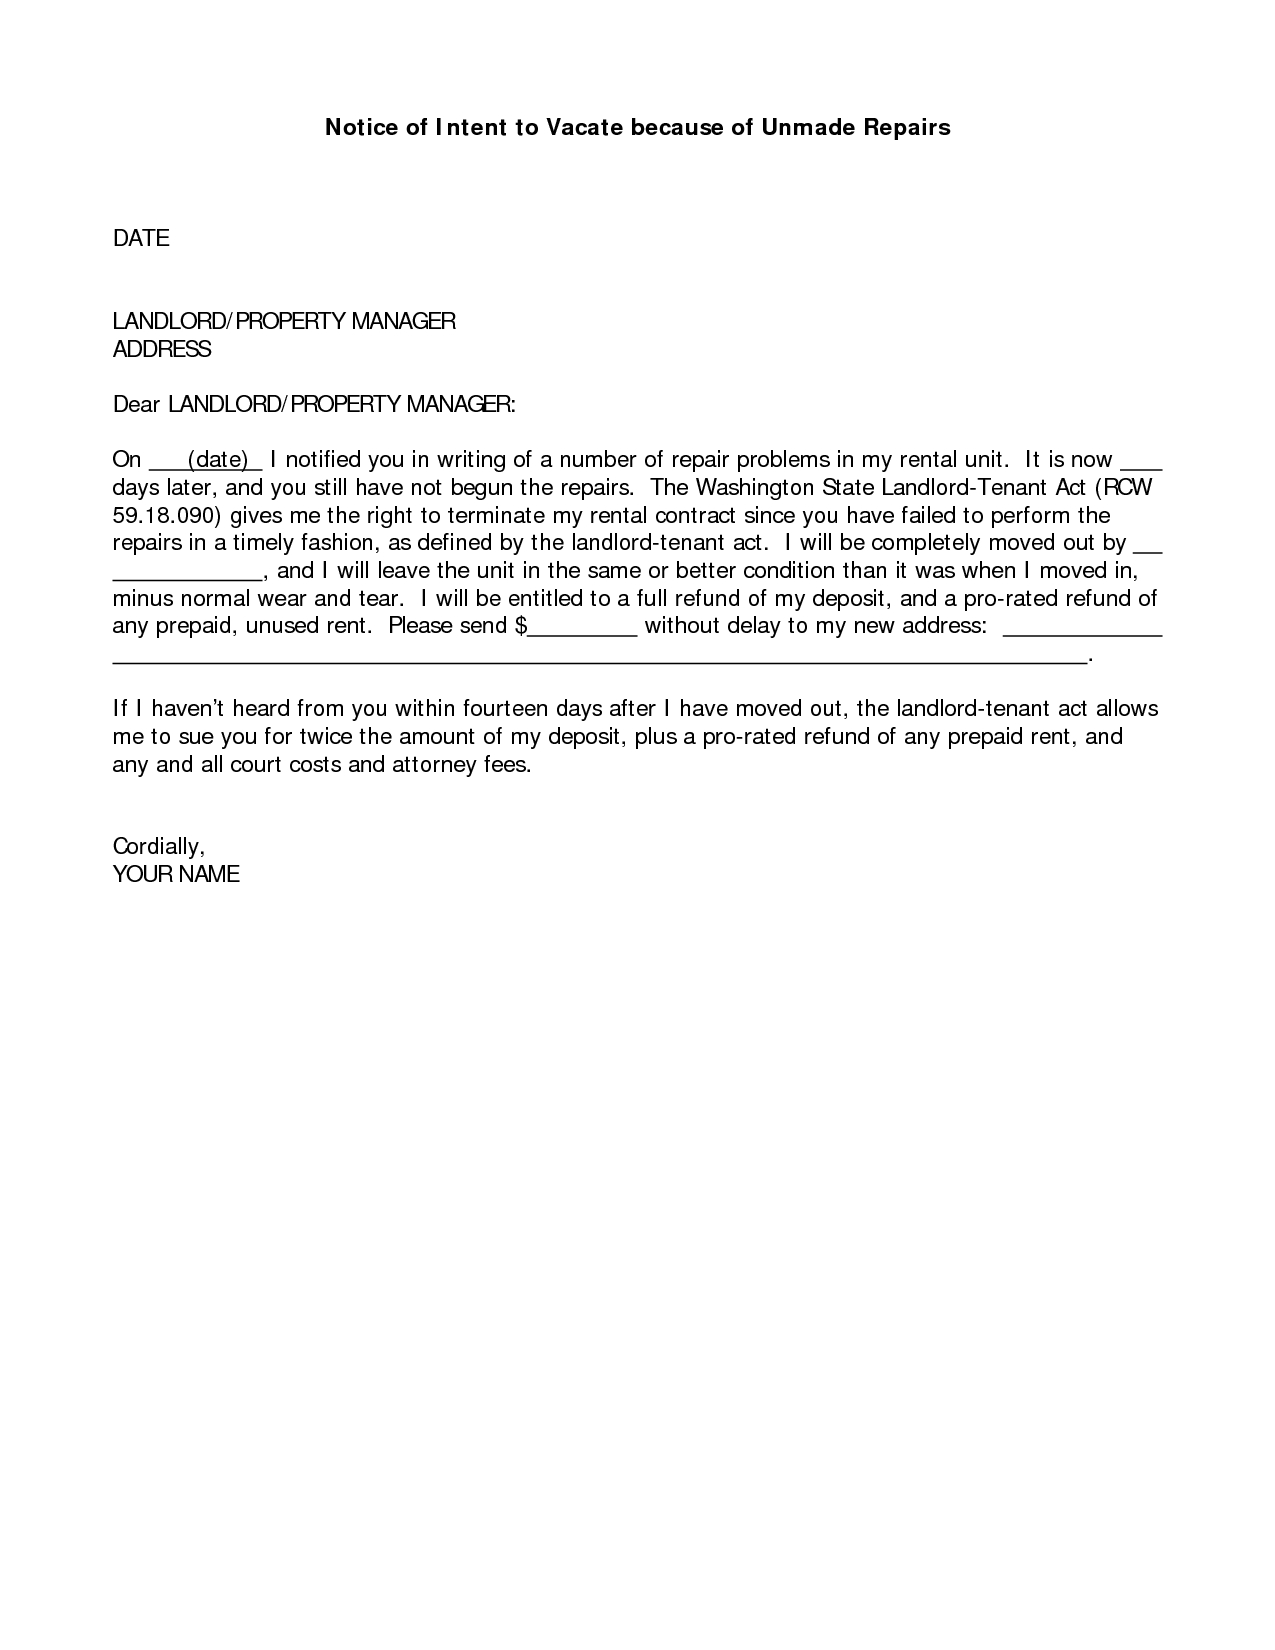 Notice to Vacate Apartment Letter Template - Best S Vacating Apartment Letterndlord Notice to Tenant